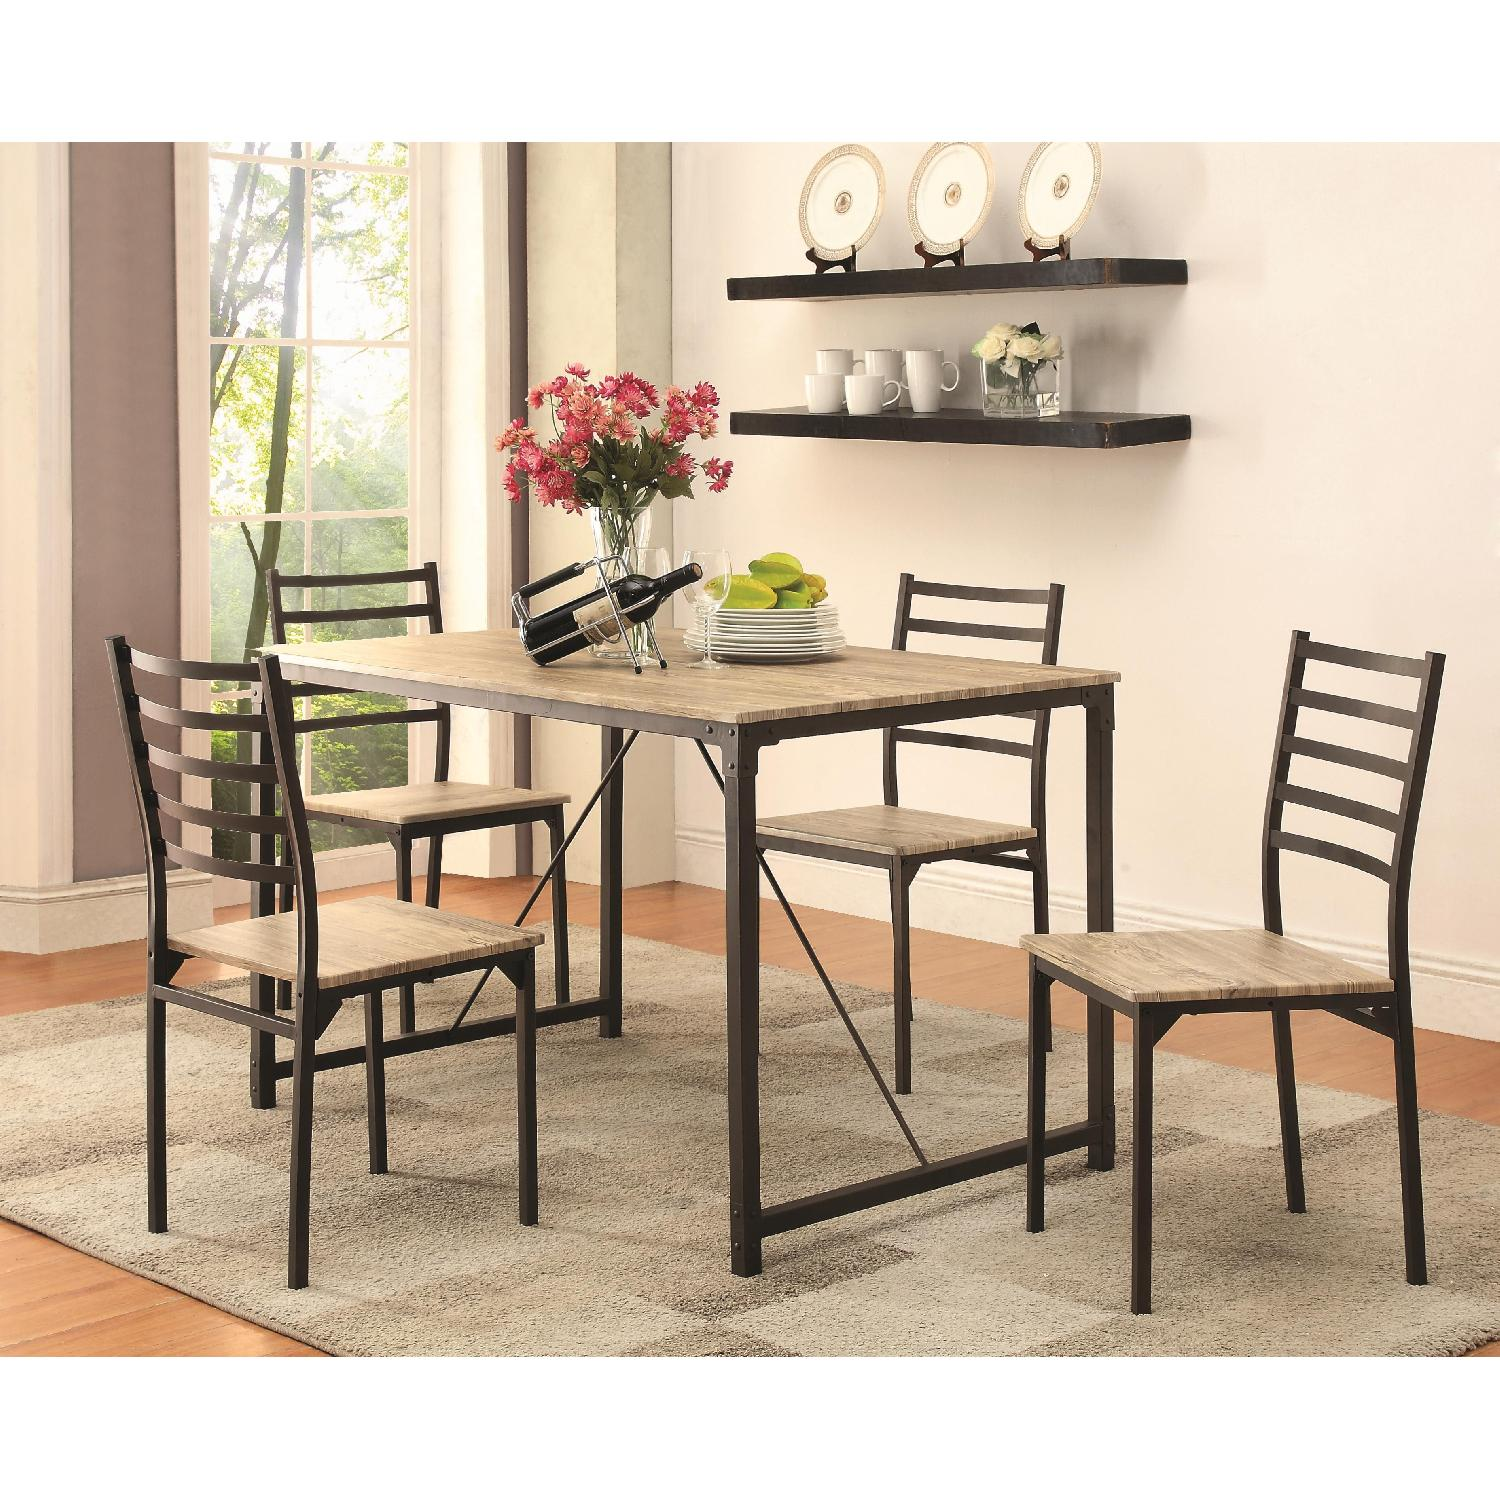 Industrial Design Inspired 5 Piece Rustic Dining Set - image-1